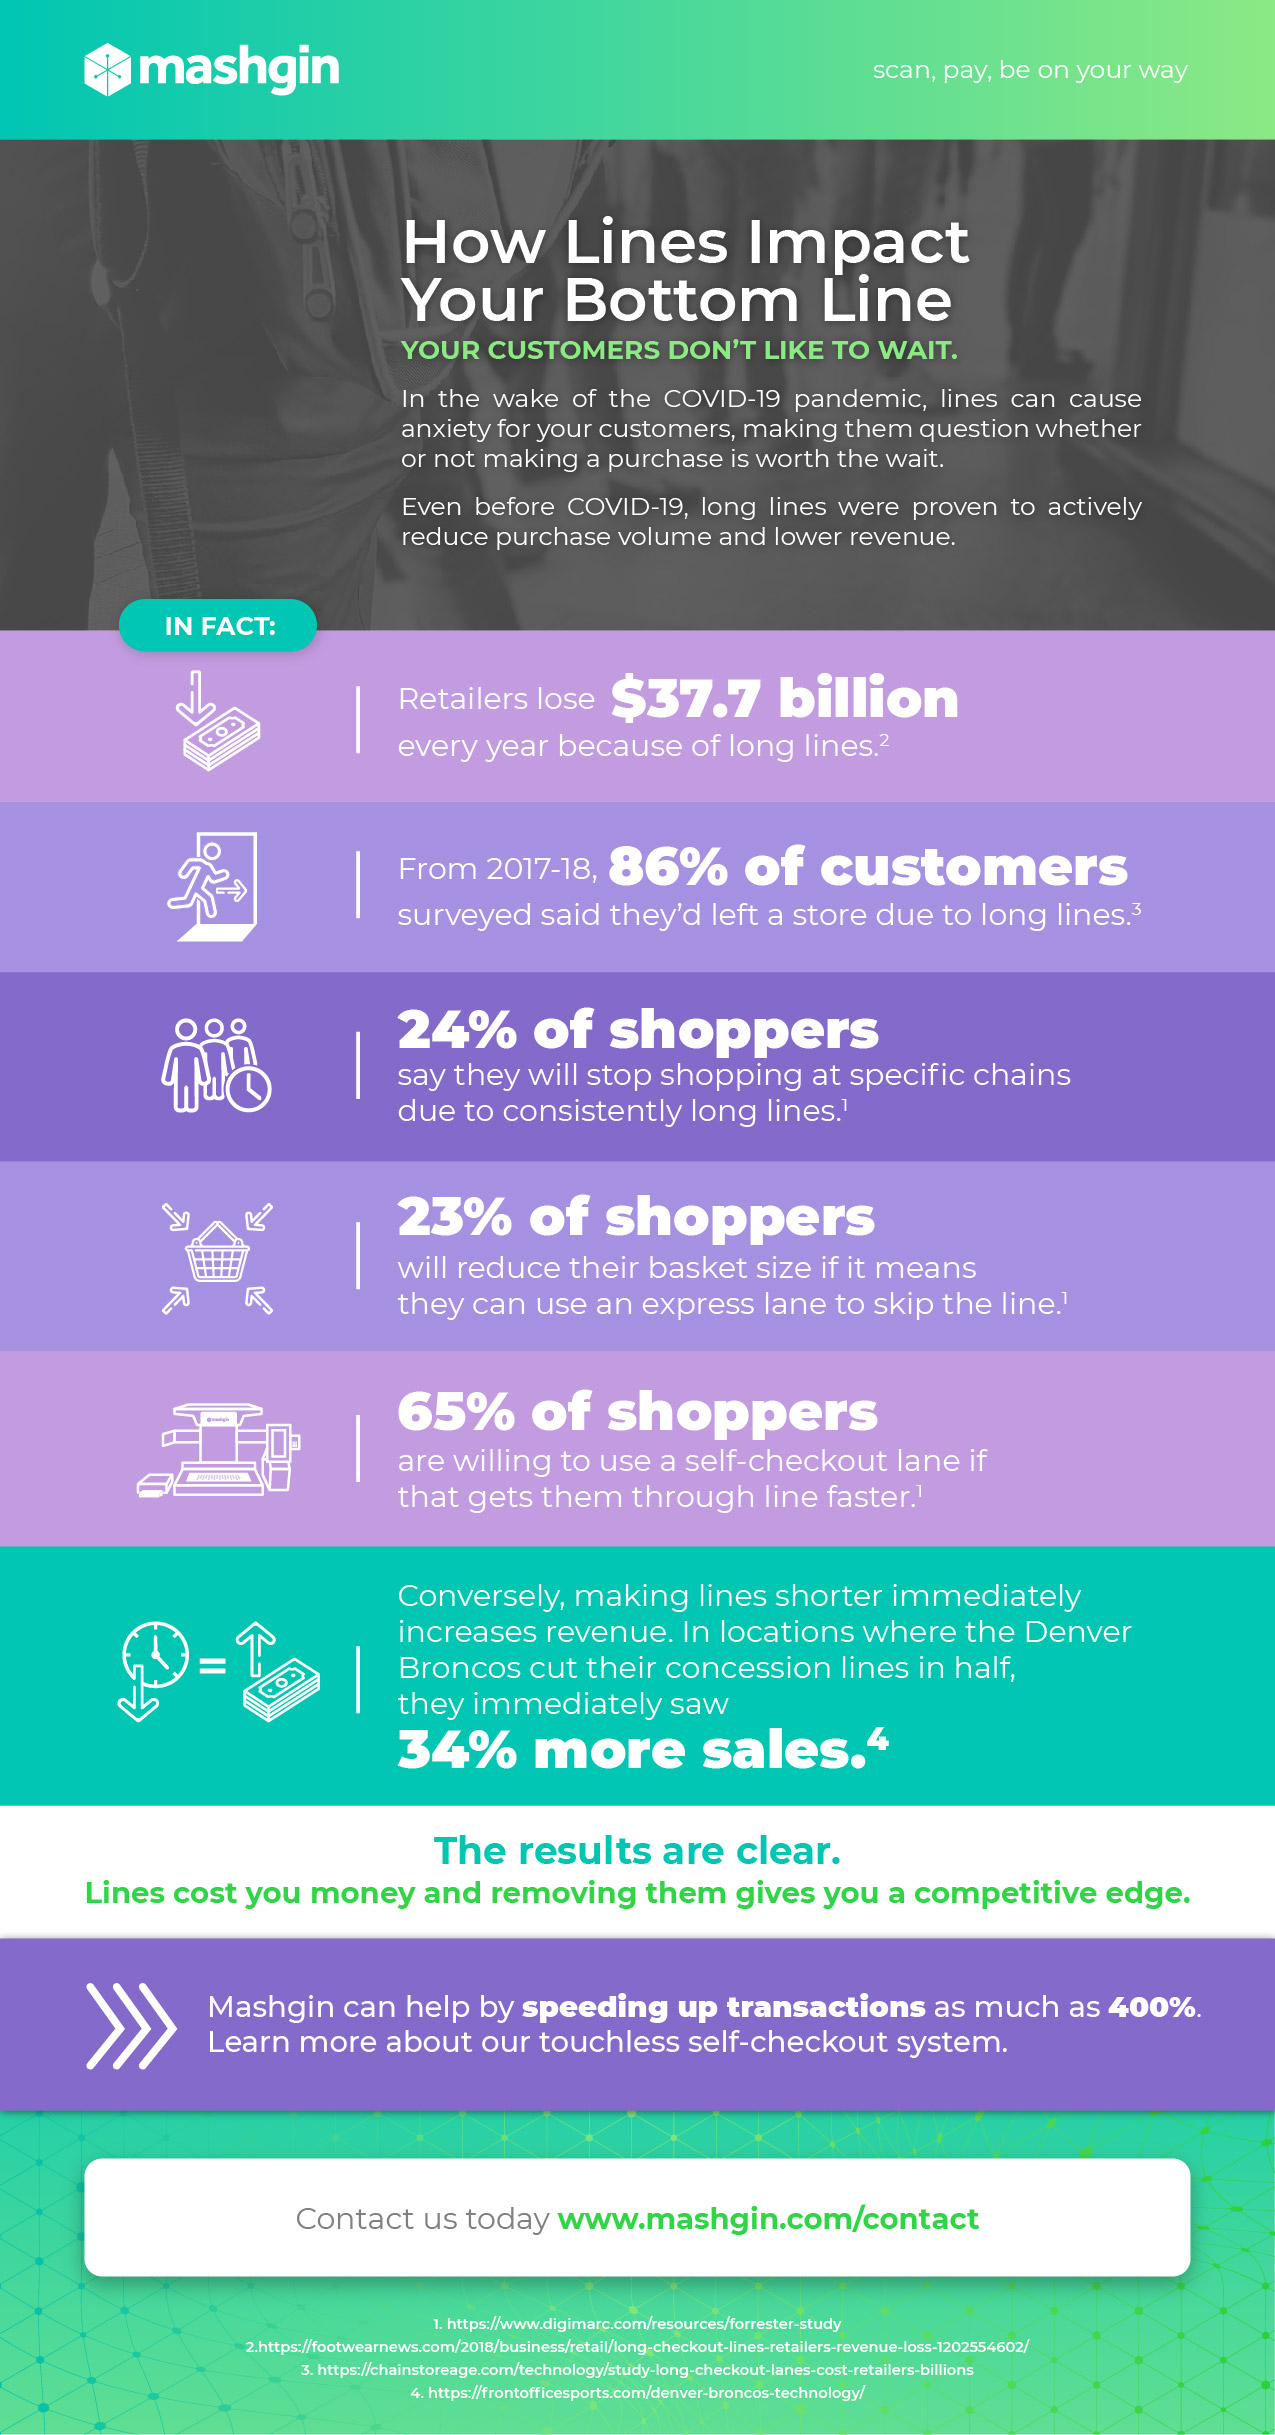 An infographic describing how lines impact the bottom line of retail businesses